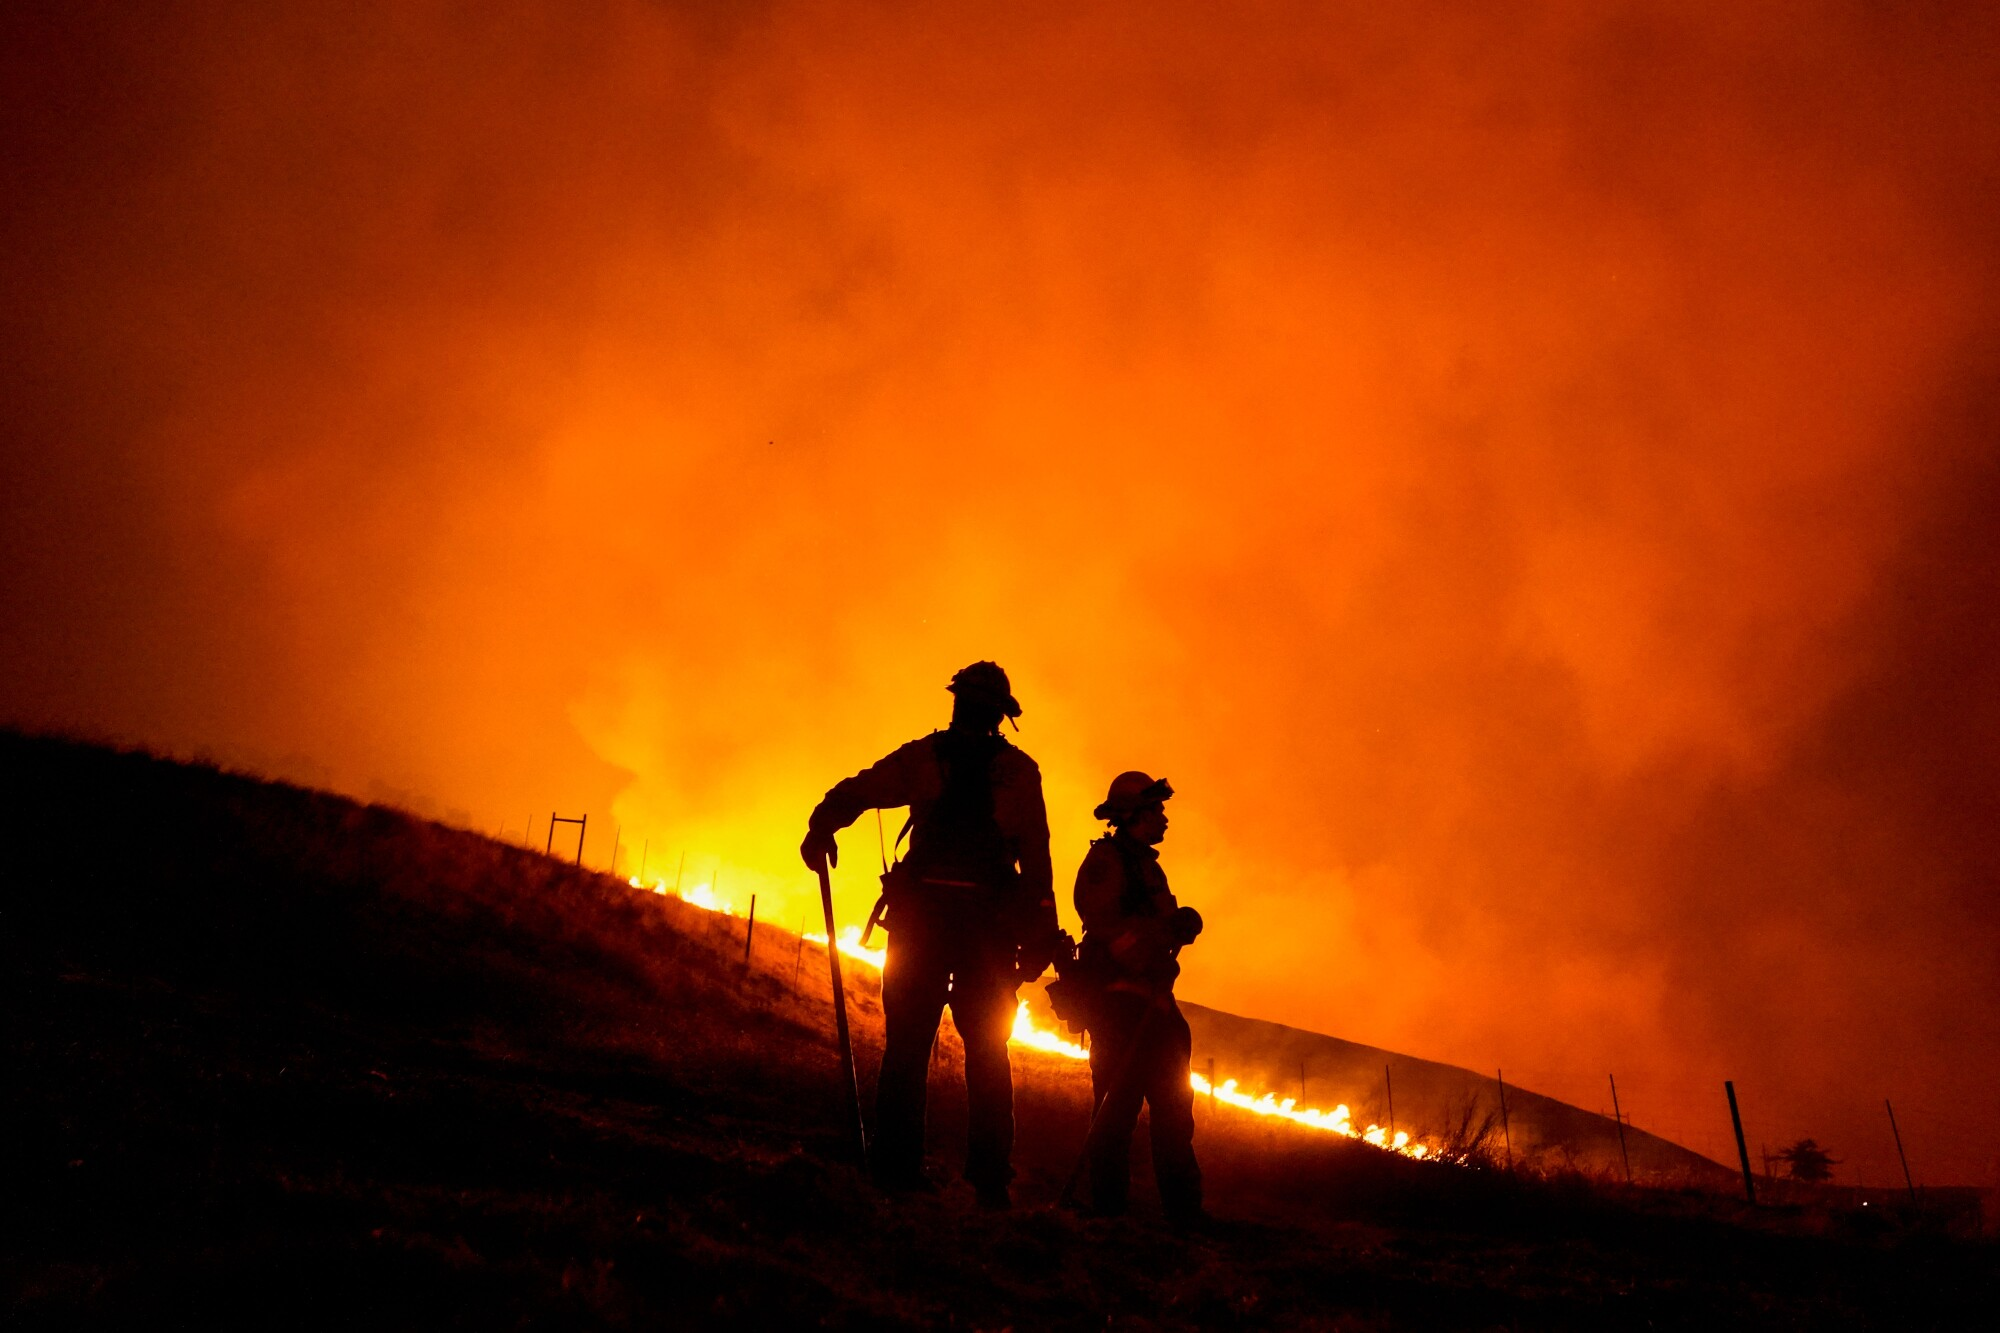 Members of the Santa Rosa Fire Department stand before a hill in flames.